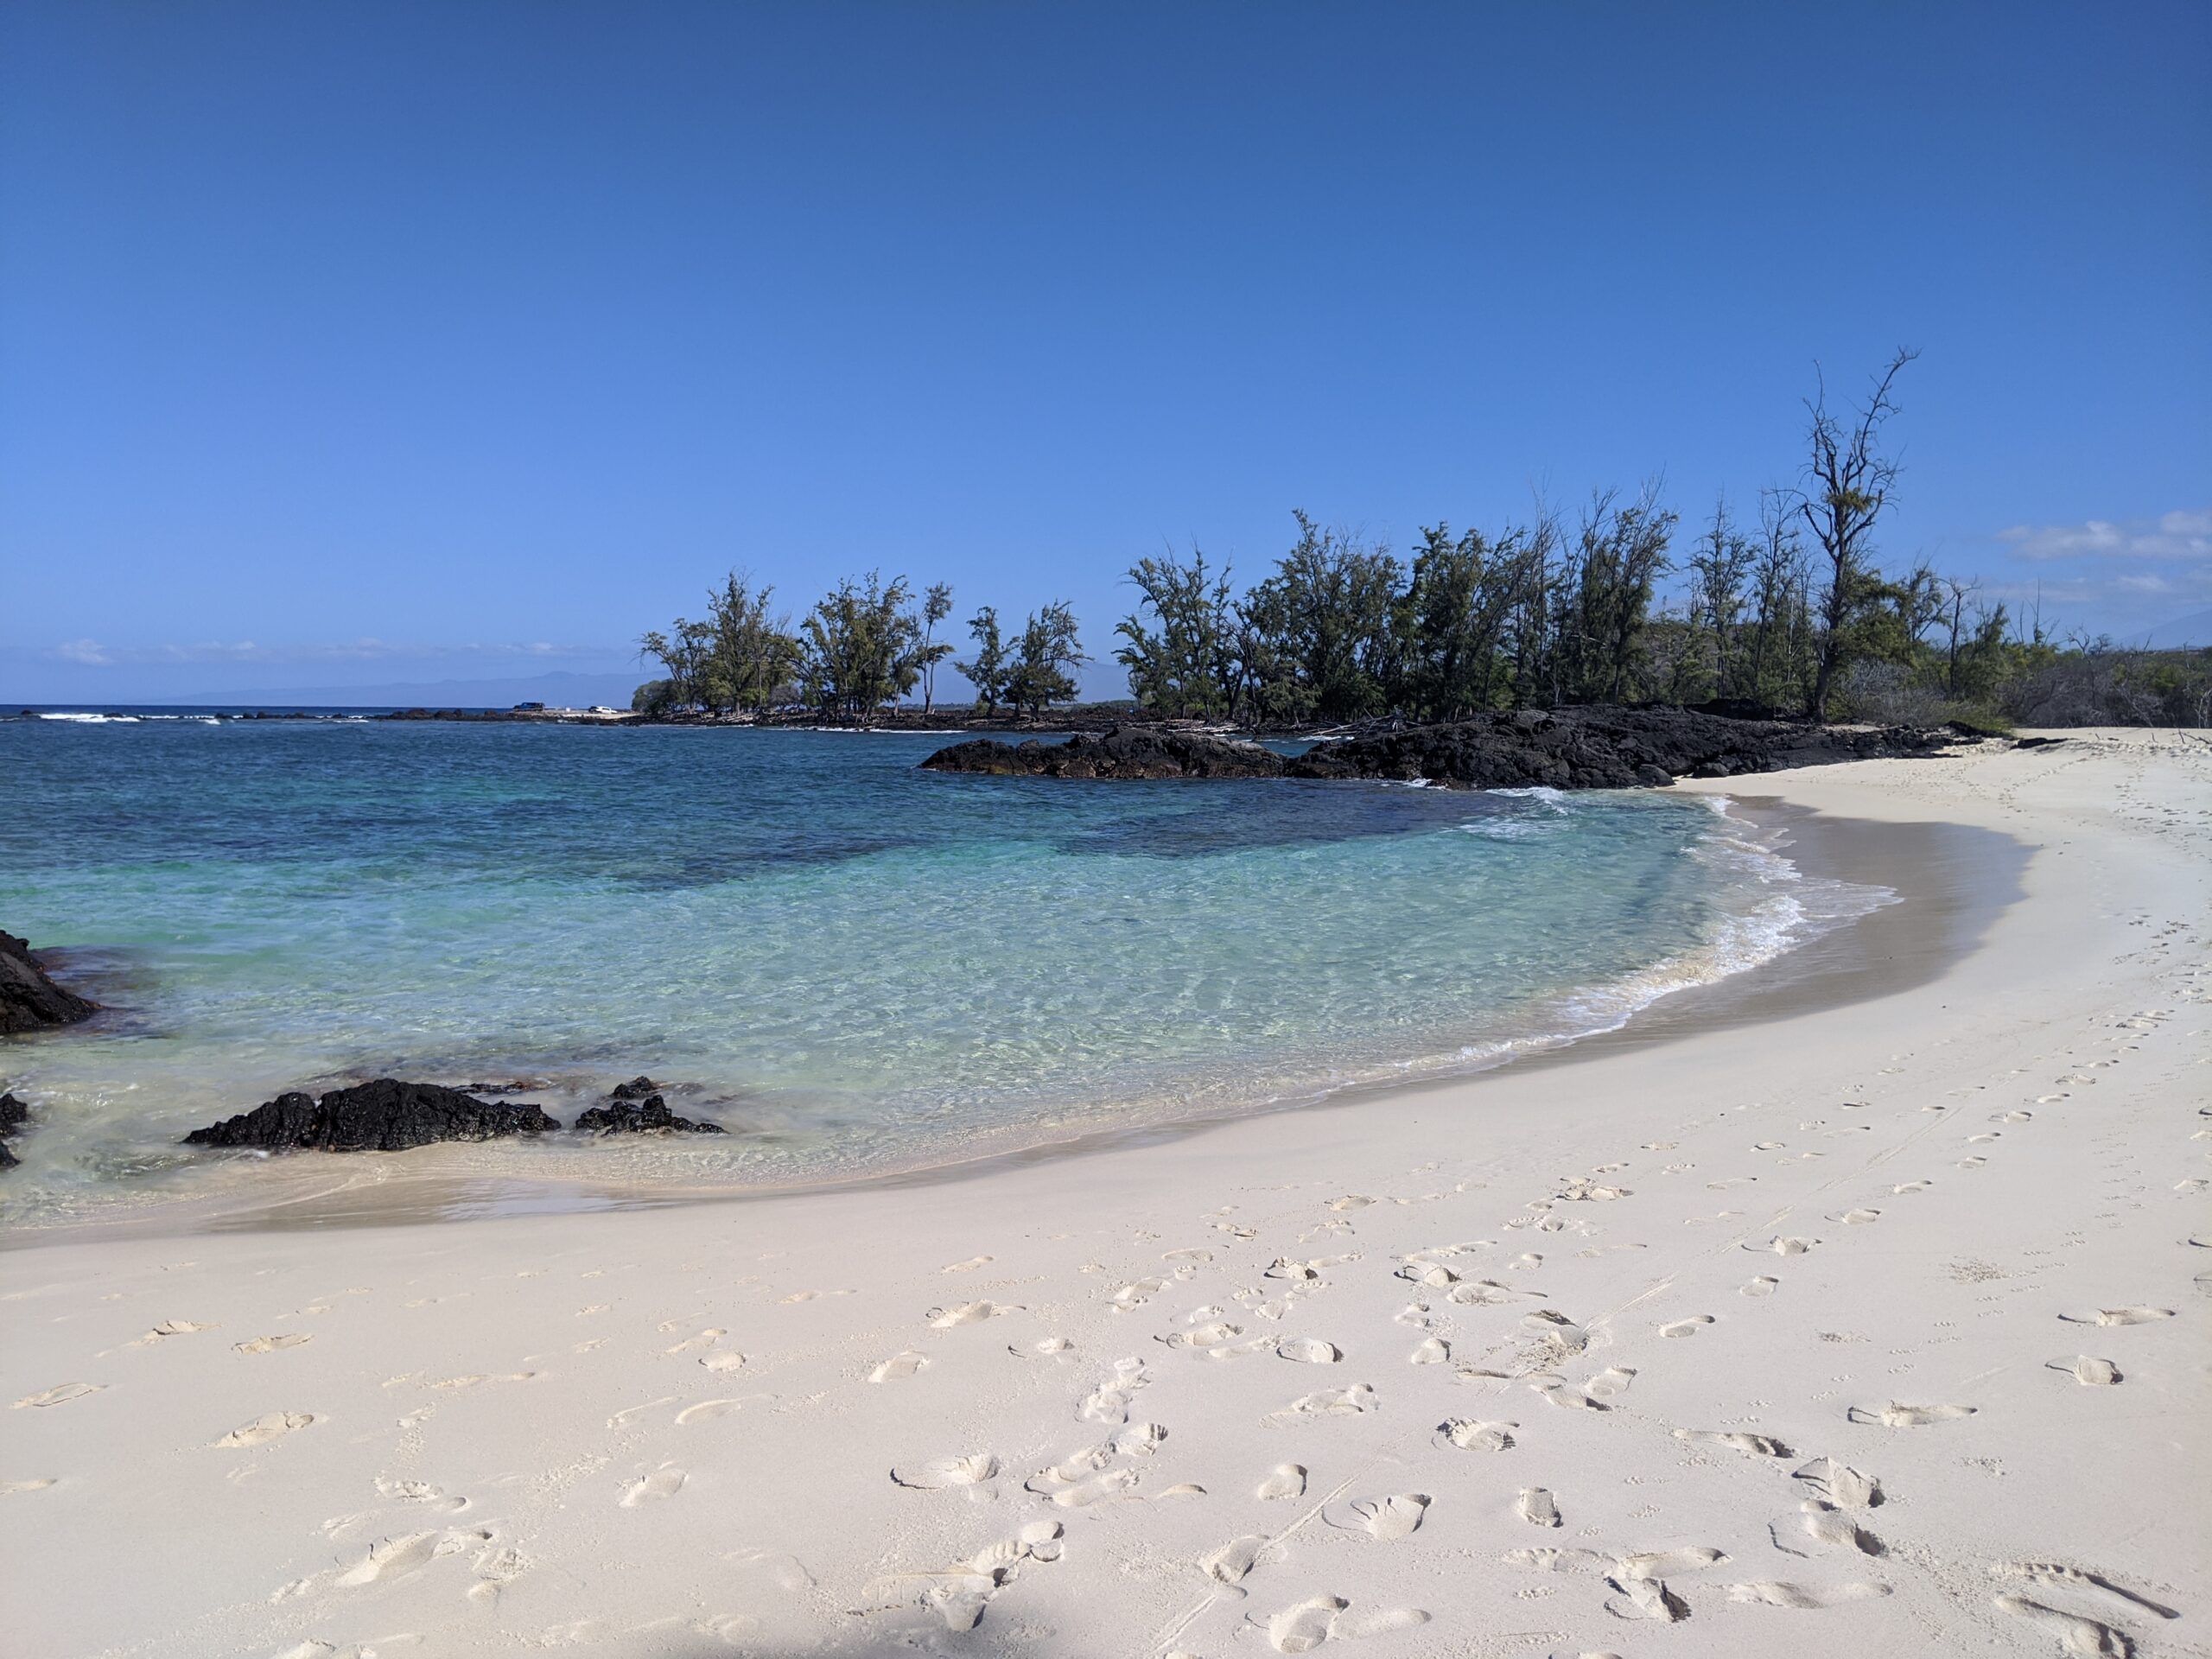 New beach we found on the Big Island of Hawaii for snorkeling